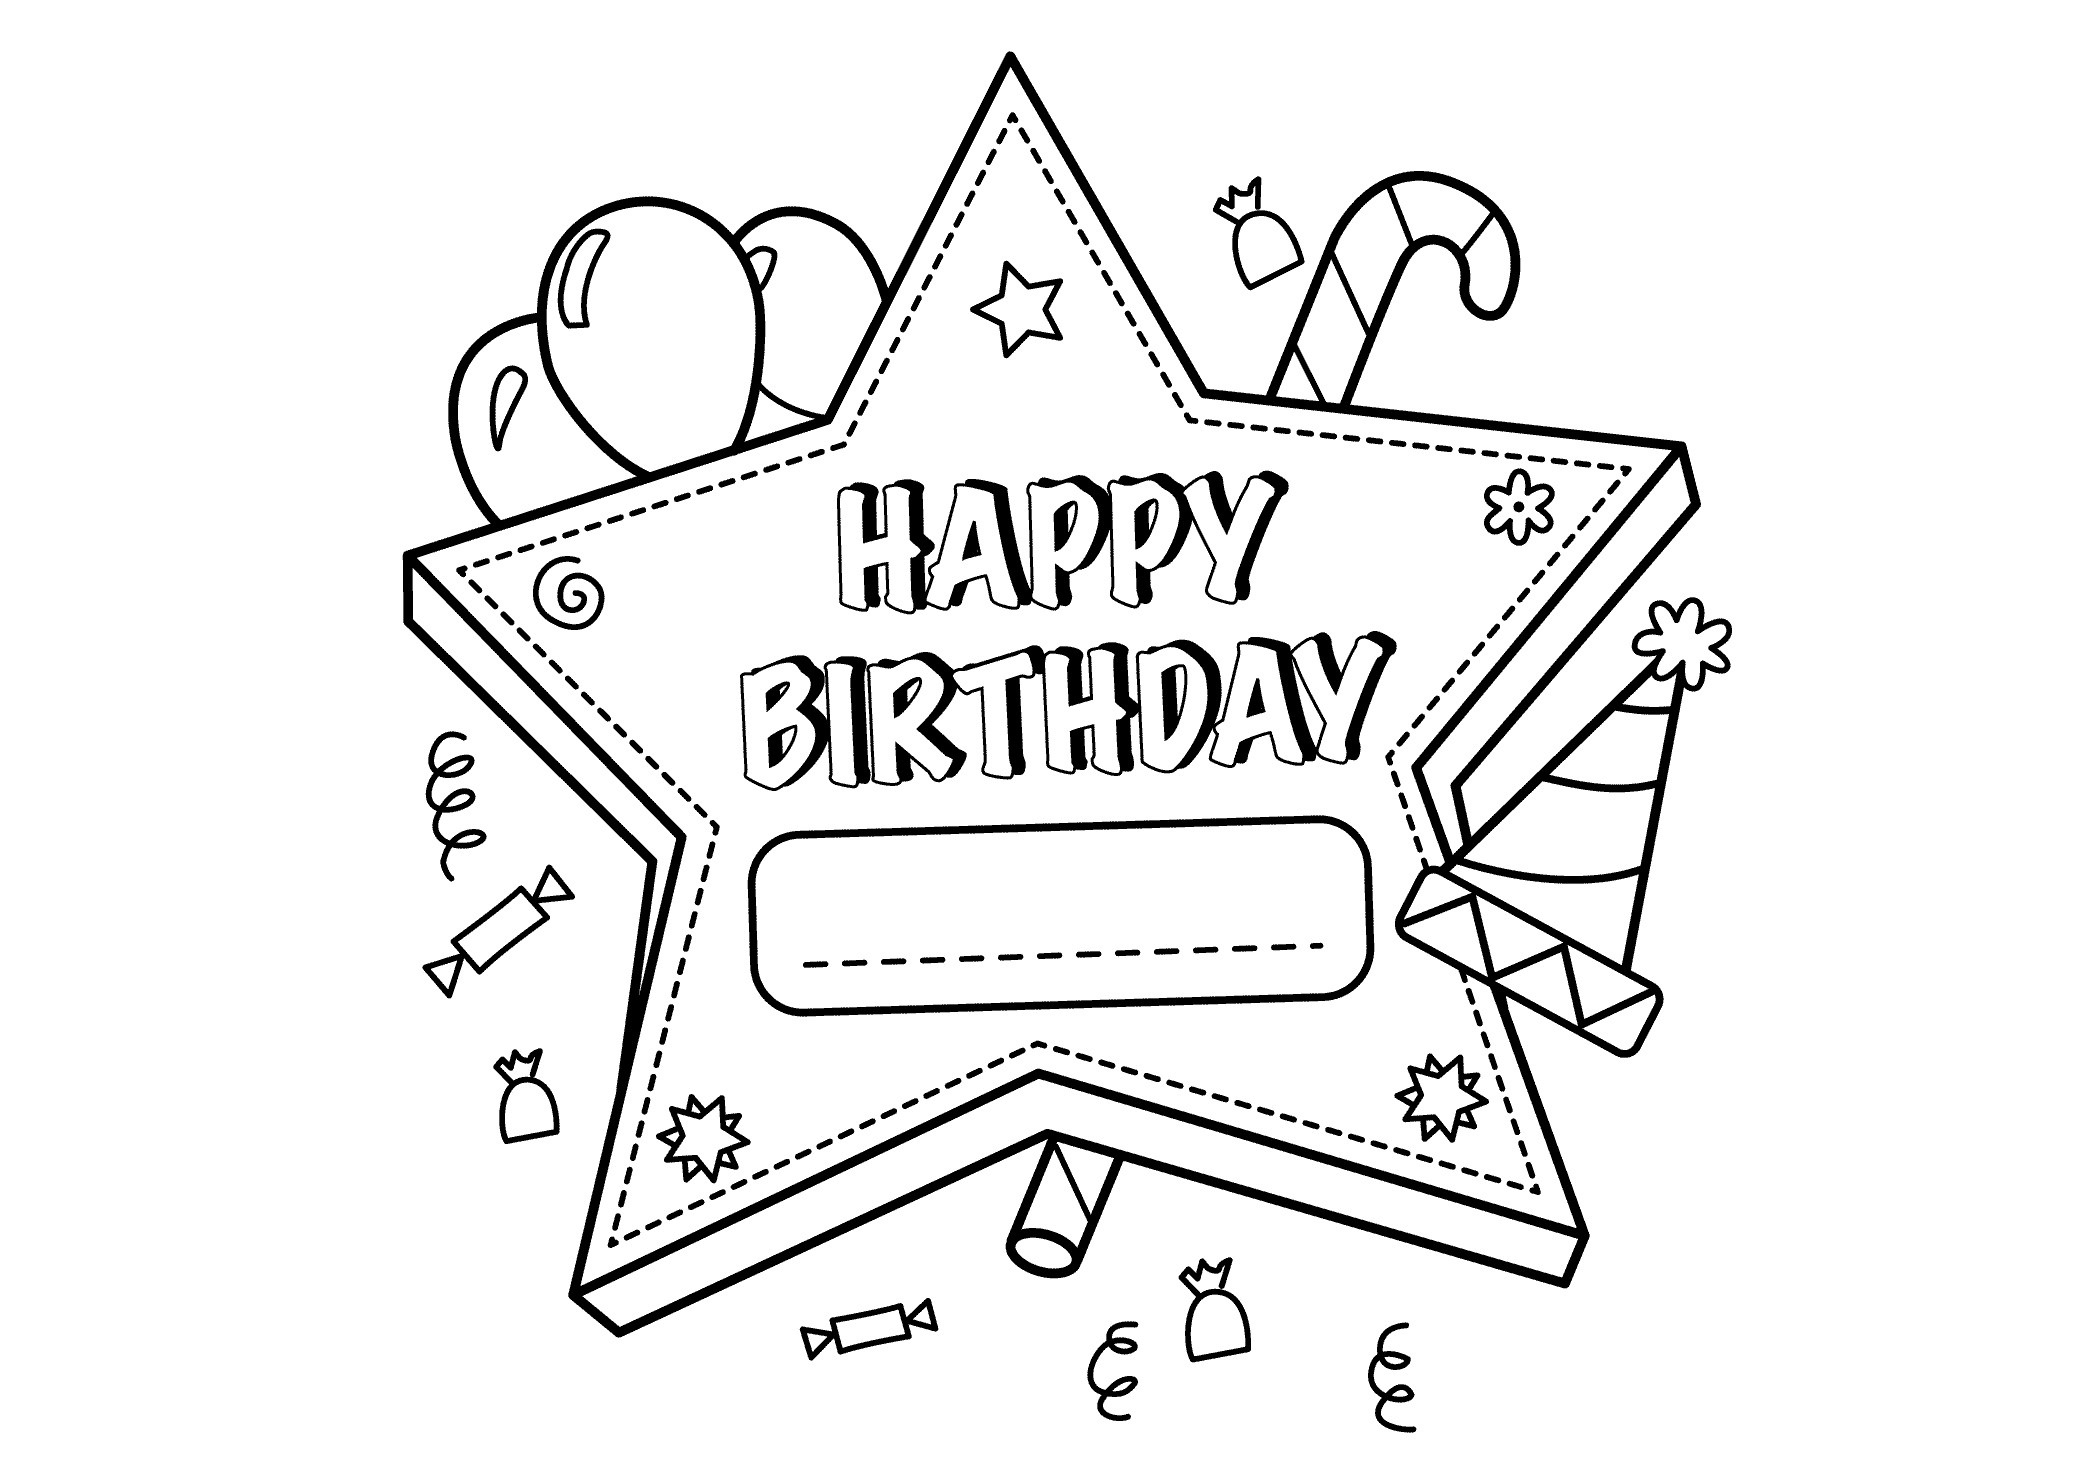 birthday card coloring sheets ; happy-birthday-coloring-pages-for-boys-coloringstar